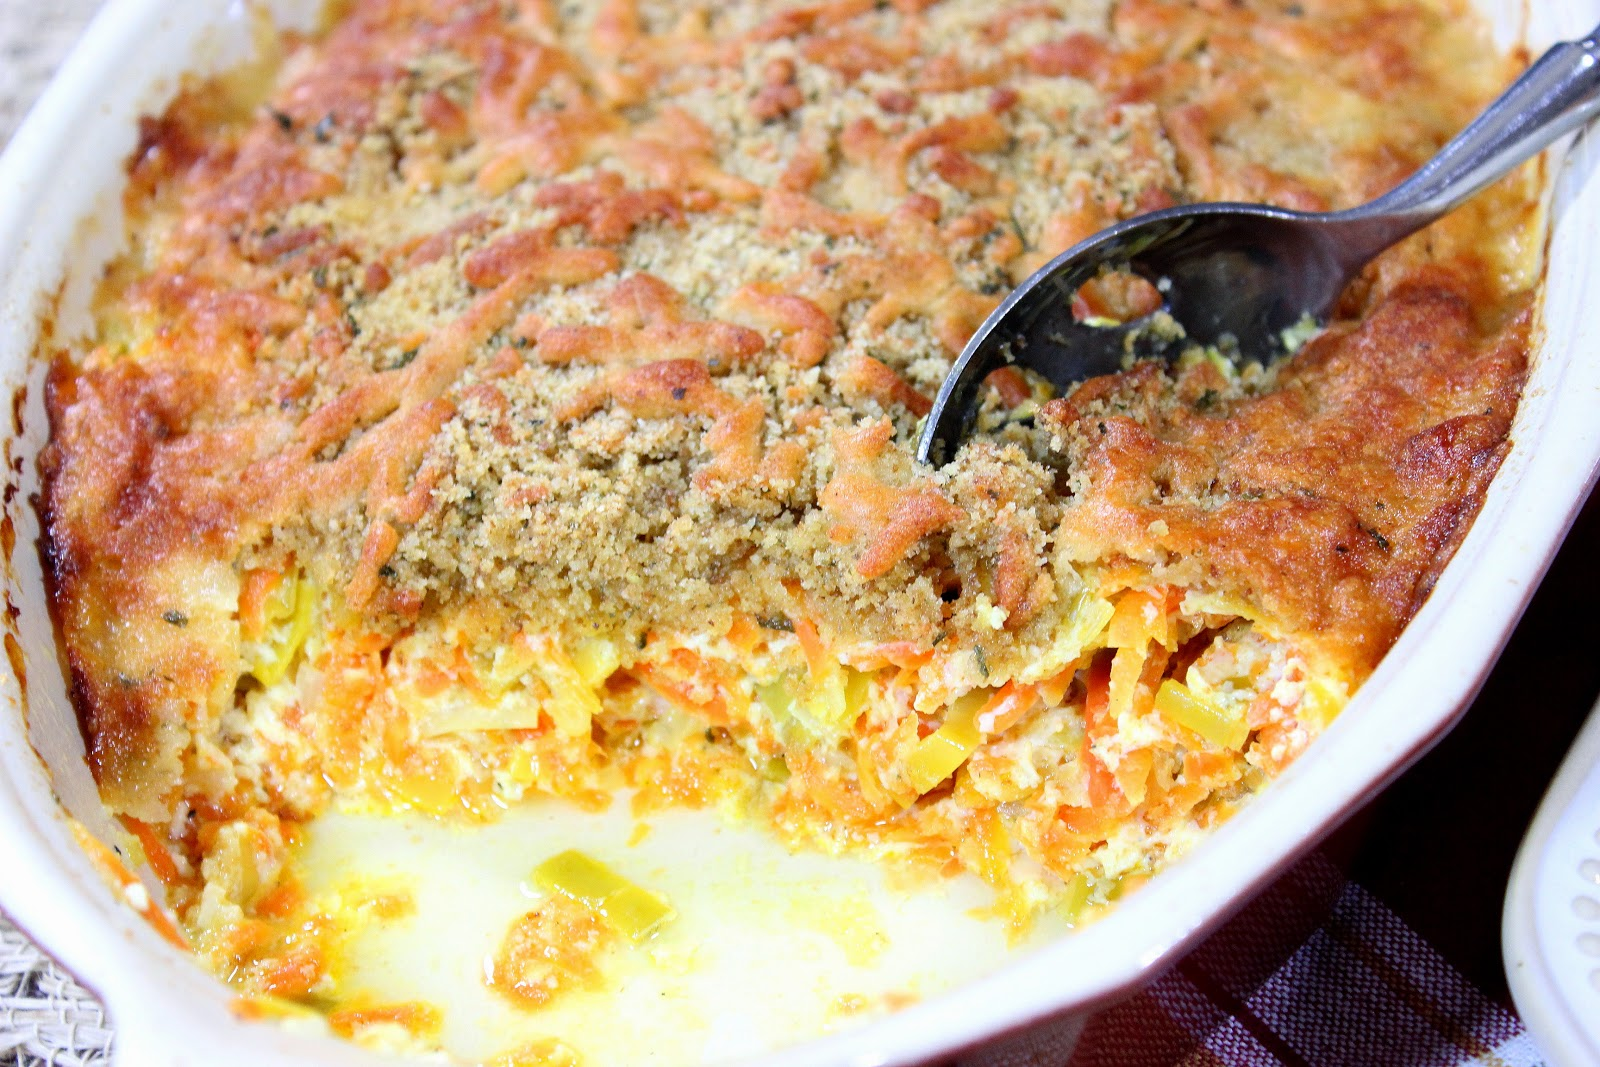 http://www.kudoskitchenbyrenee.com/2015/03/carrot-and-leek-gratin-plus-cookbook-giveaway.html